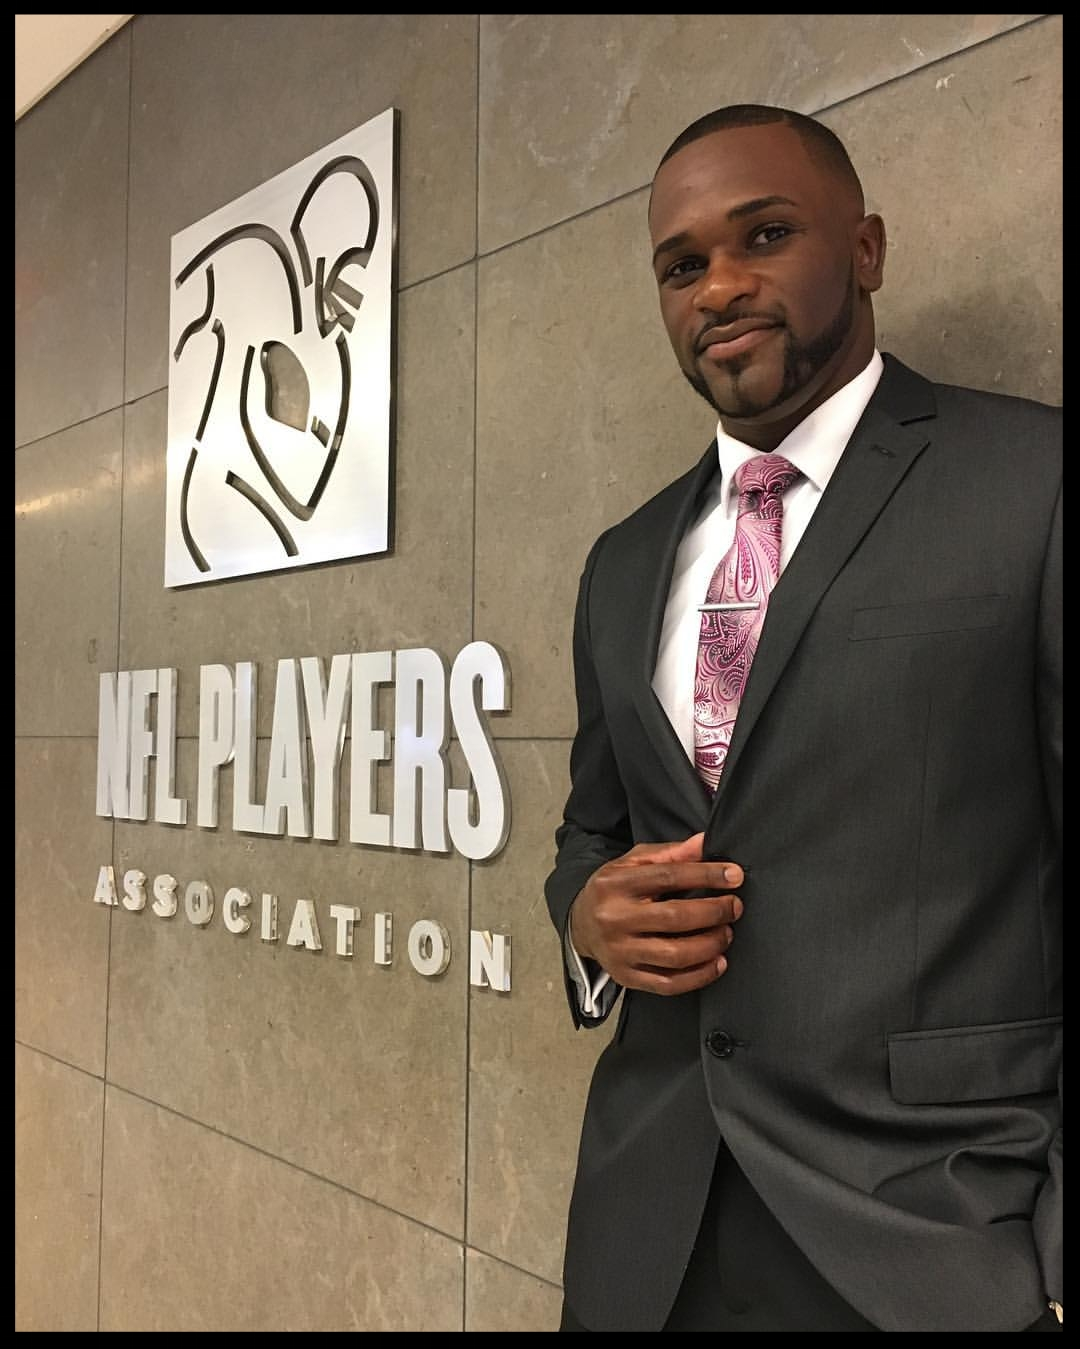 Micale Allen - is the Coordinator of Player Services for NFL Players Inc., the licensing and marketing business of the NFL Players Association. In his role, he assists in streamlining companies' player activations by facilitating endorsement deals, appearance logistics, and matching partner specific criteria and business goals with player personalities and brand attributes. A native of Philadelphia, Micale received a partial football scholarship to Robert Morris University in 2010 where he played football his freshmen and sophomore year. Thereafter, he transferred to Morgan State University in 2012, where he walked on the football team and earned a full athletic scholarship. Micale graduated from Morgan State in 2015 with his Bachelor's Degree in Business Administration and earned a Master's Degree in Sports Management with a concentration in Athletic Administration from Southern New Hampshire University in 2017. Grateful for the opportunities that football has afforded him, Micale now uses his platform to educate and mentor young NFL Players off the field. Outside of the NFLPA, Micale regularly speaks to high school students and mentors young men and women on the importance of leadership, scholarship, and community-service. Over the last year, Micale has participated in Leadership and Professional Development seminars. Always committed to helping and serving our community, Micale hopes to one day start a foundation that helps families in poverty and provides mentoring to youth. Follow him on Instagram @micalejallen.